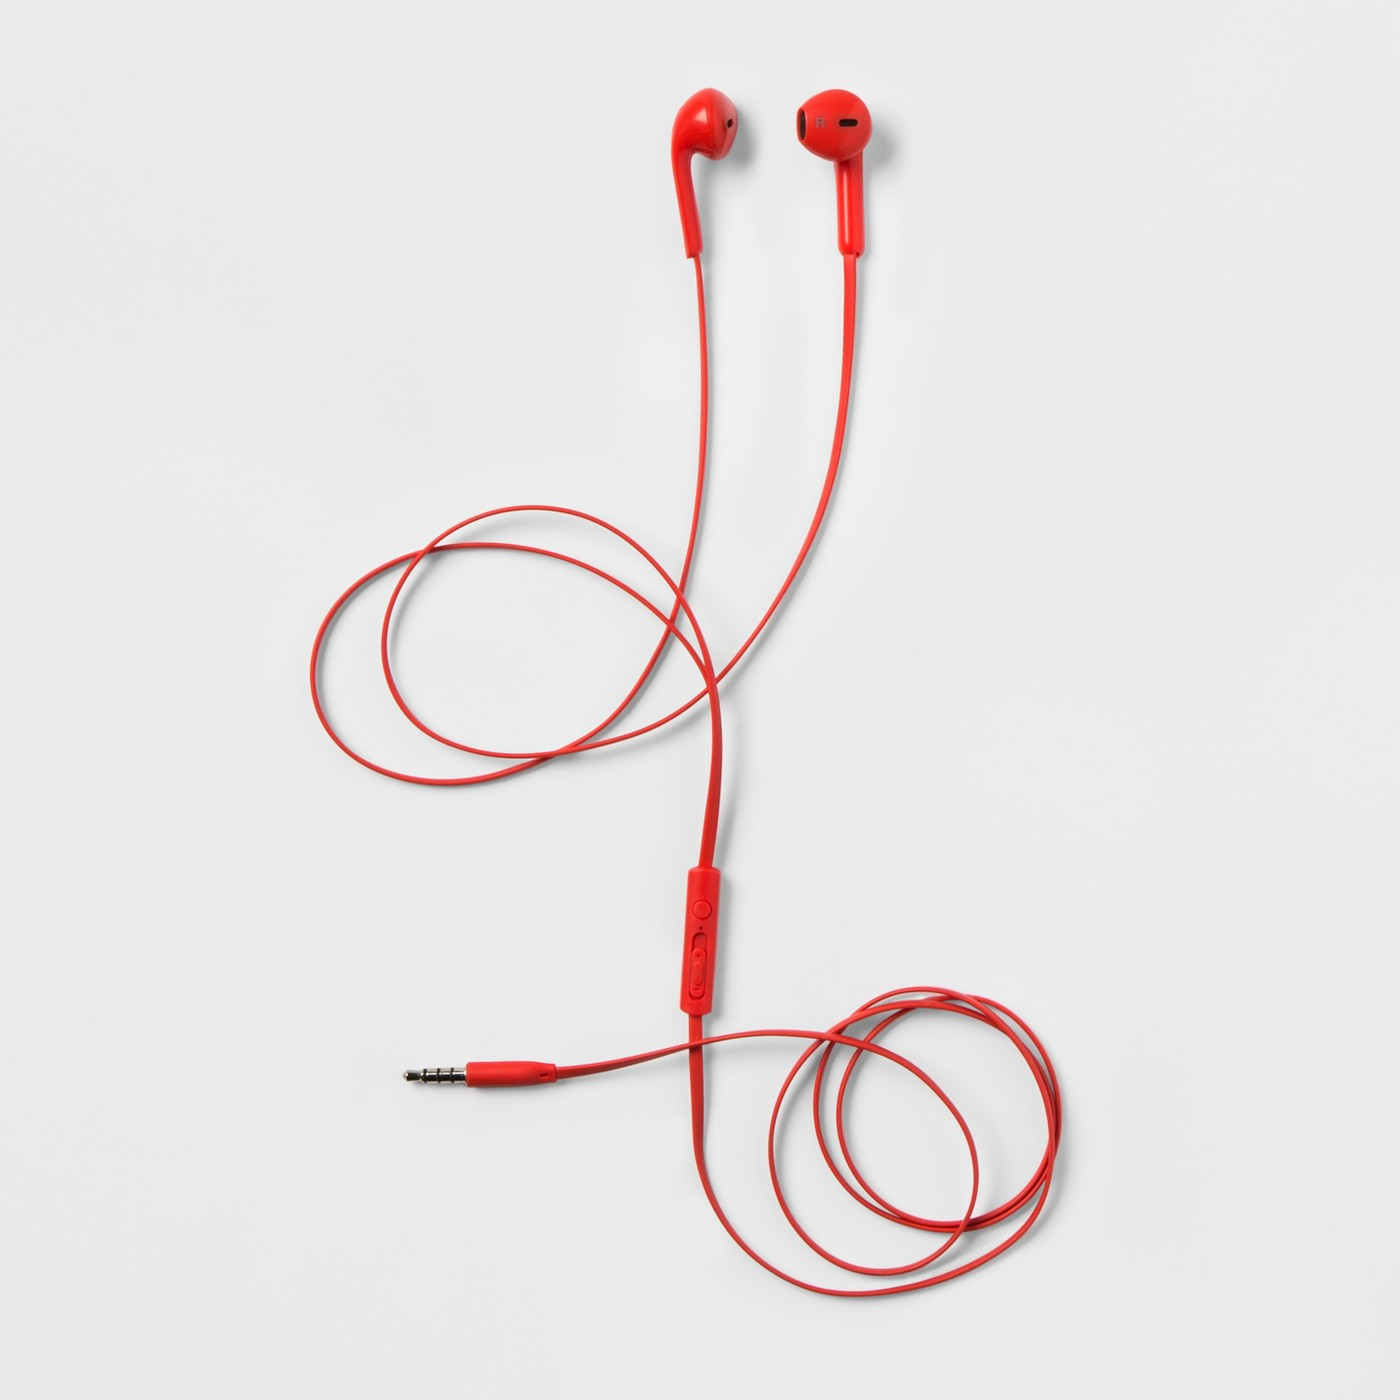 Bright Red Earbuds